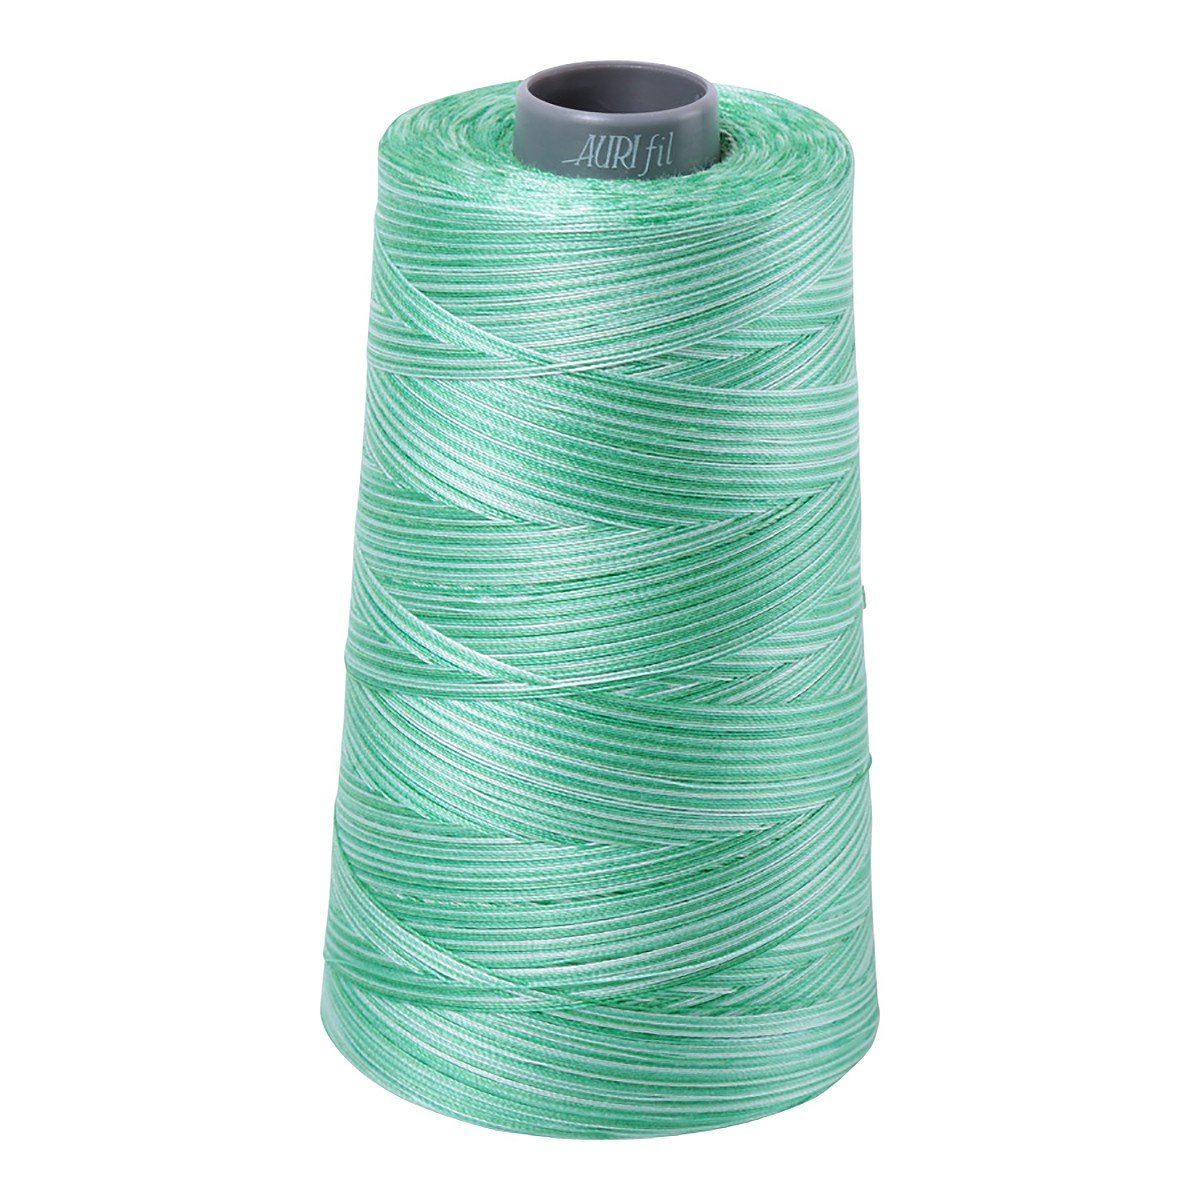 Mako (Cotton) Embroidery Thread 28wt 3609yds Variegated Mint Julep